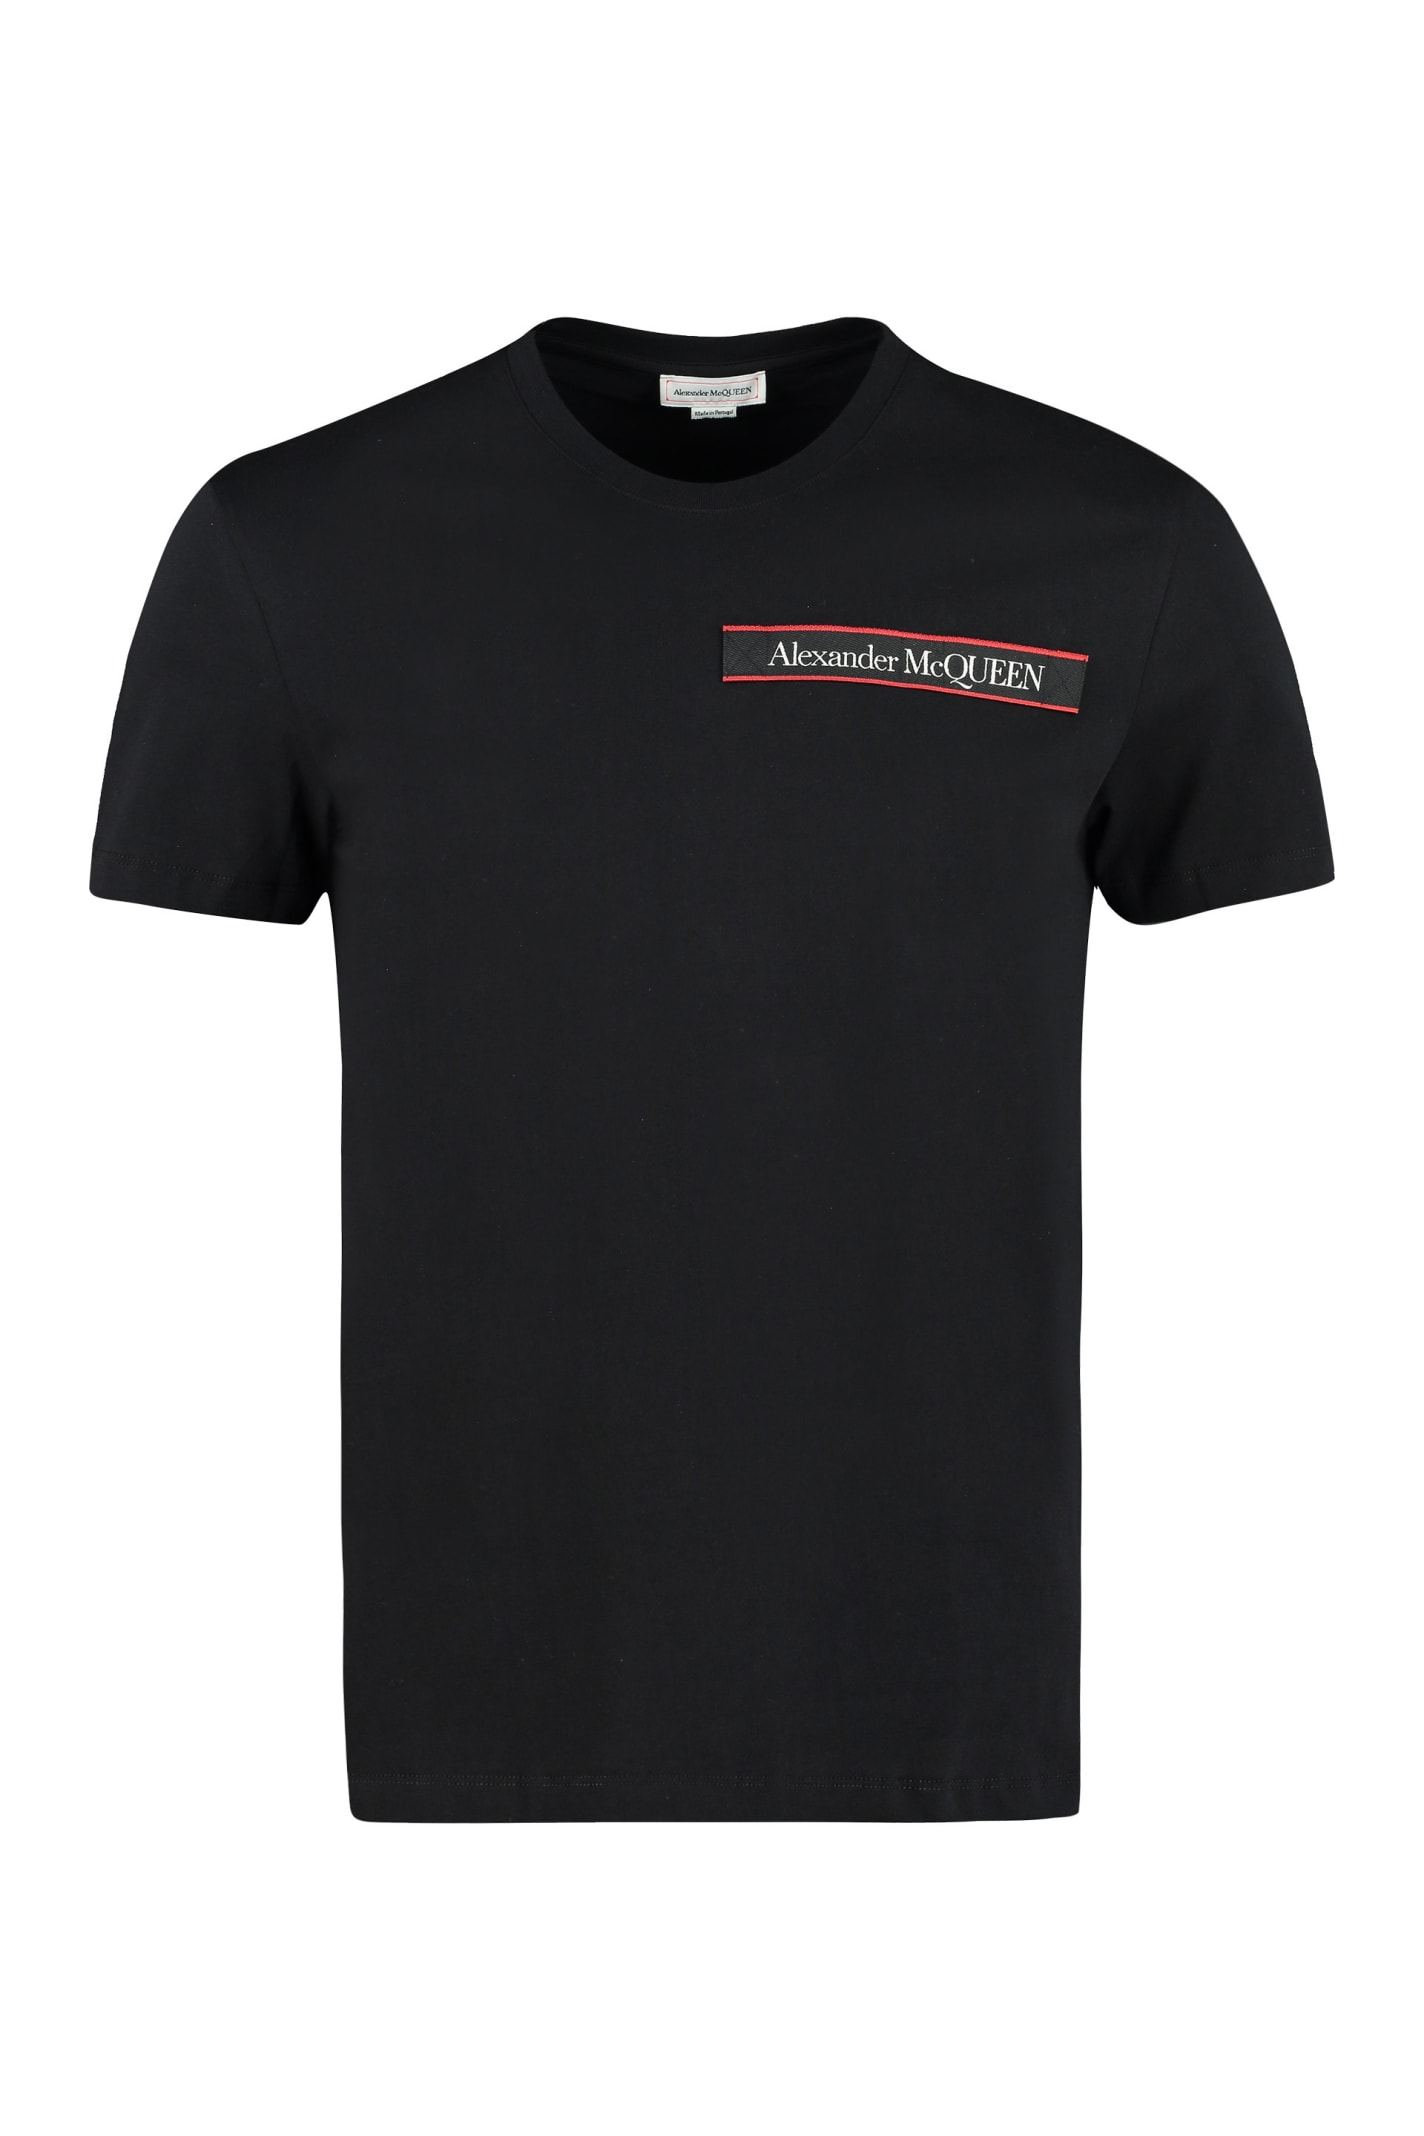 Alexander Mcqueen Cotton Crew-neck T-shirt In Black